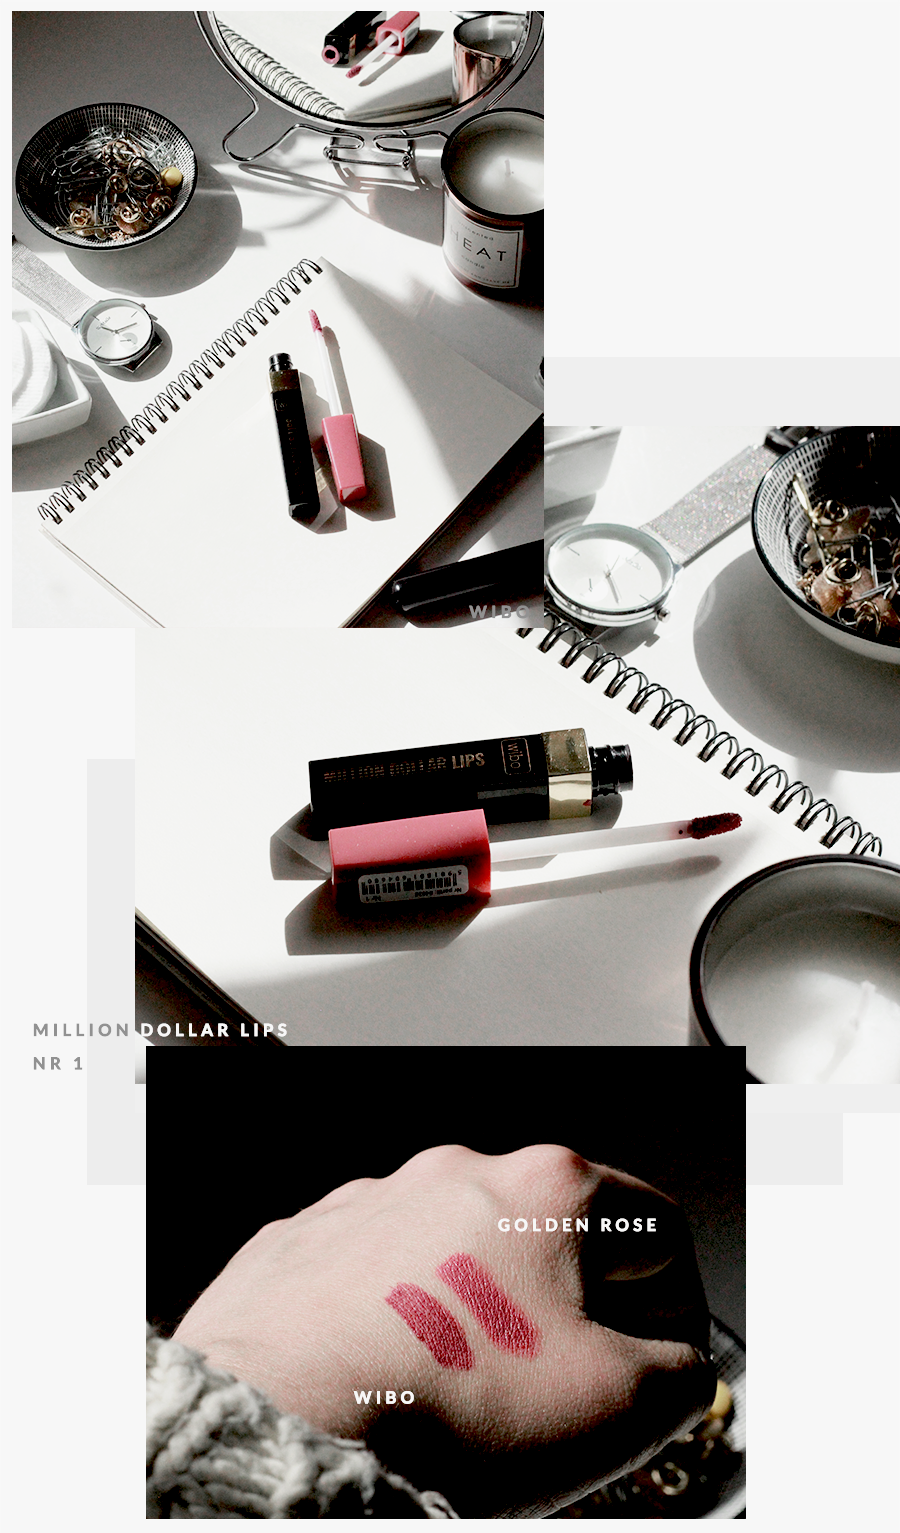 BEAUTY | Best Beauty Buys - ulubione kometyki - Makeup Revolution, L'Oreal, Wibo, Recenzja Million Dollar Lips, Olejkowy Rytuał Nutri Gold Goldandberry Gold and Berry Blog